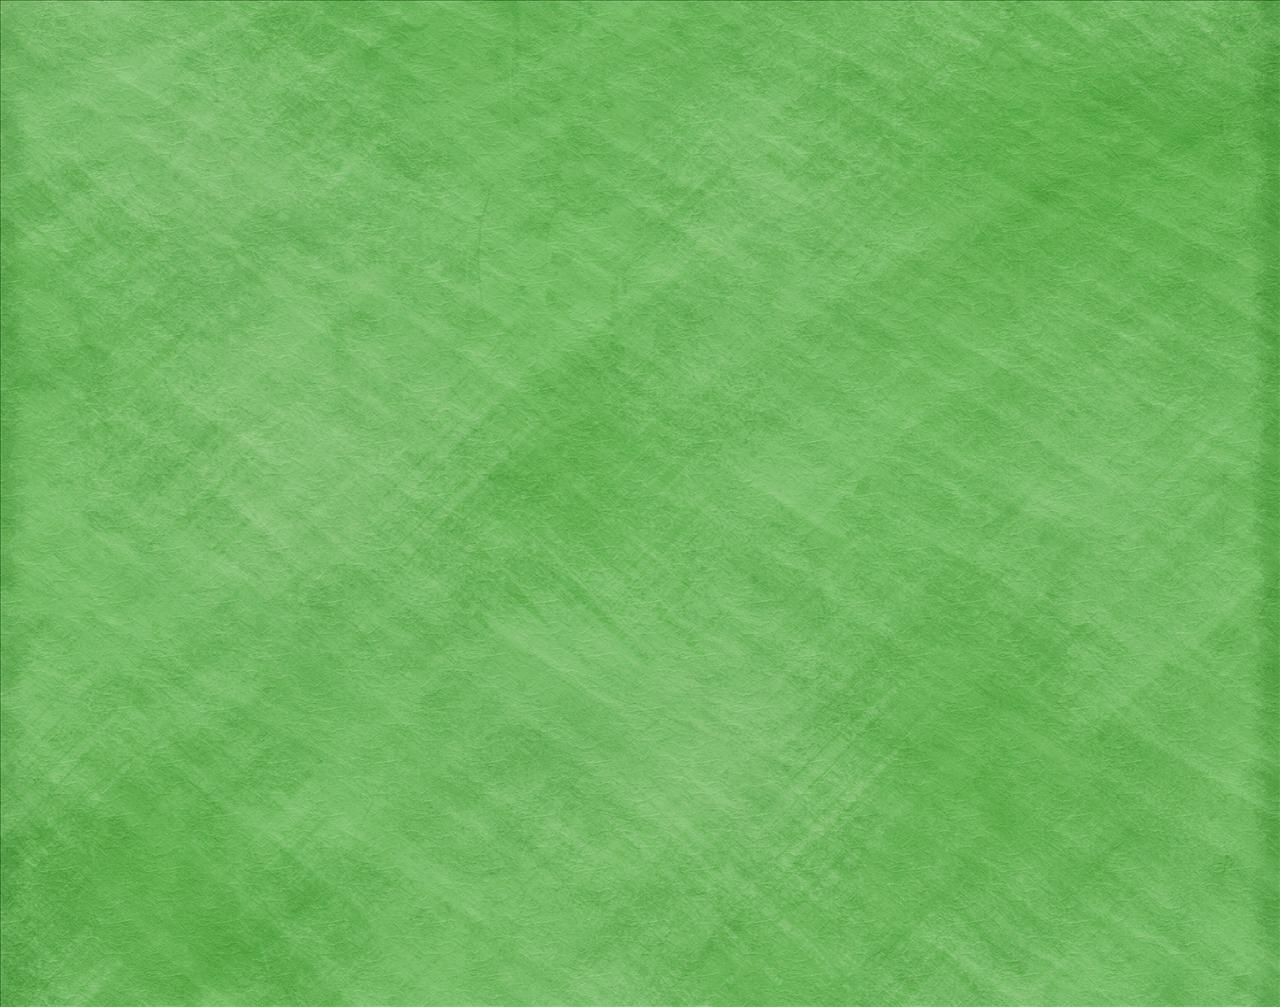 Green Beach Blank Backgrounds